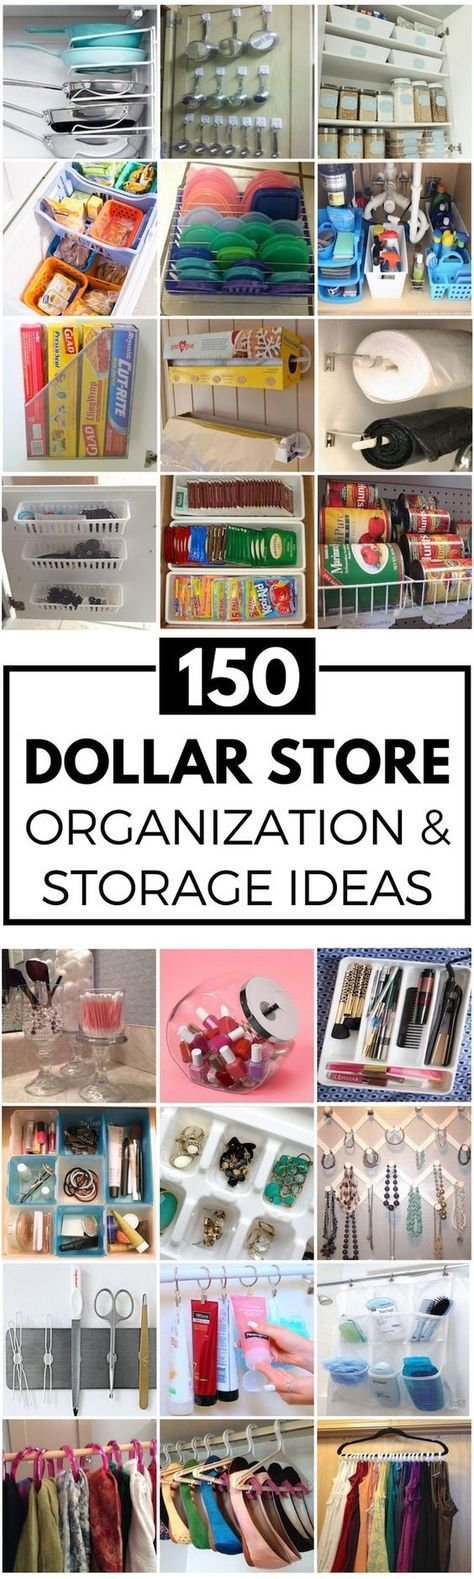 Spring cleaning just got a whole lot cheaper! Organize for less with these creative dollar store organization and storage ideas. There are ideas for every room in your house (kitchen, bathroom, laundry, closet, office and more!) Kitchen Dollar … #kitchenorganization